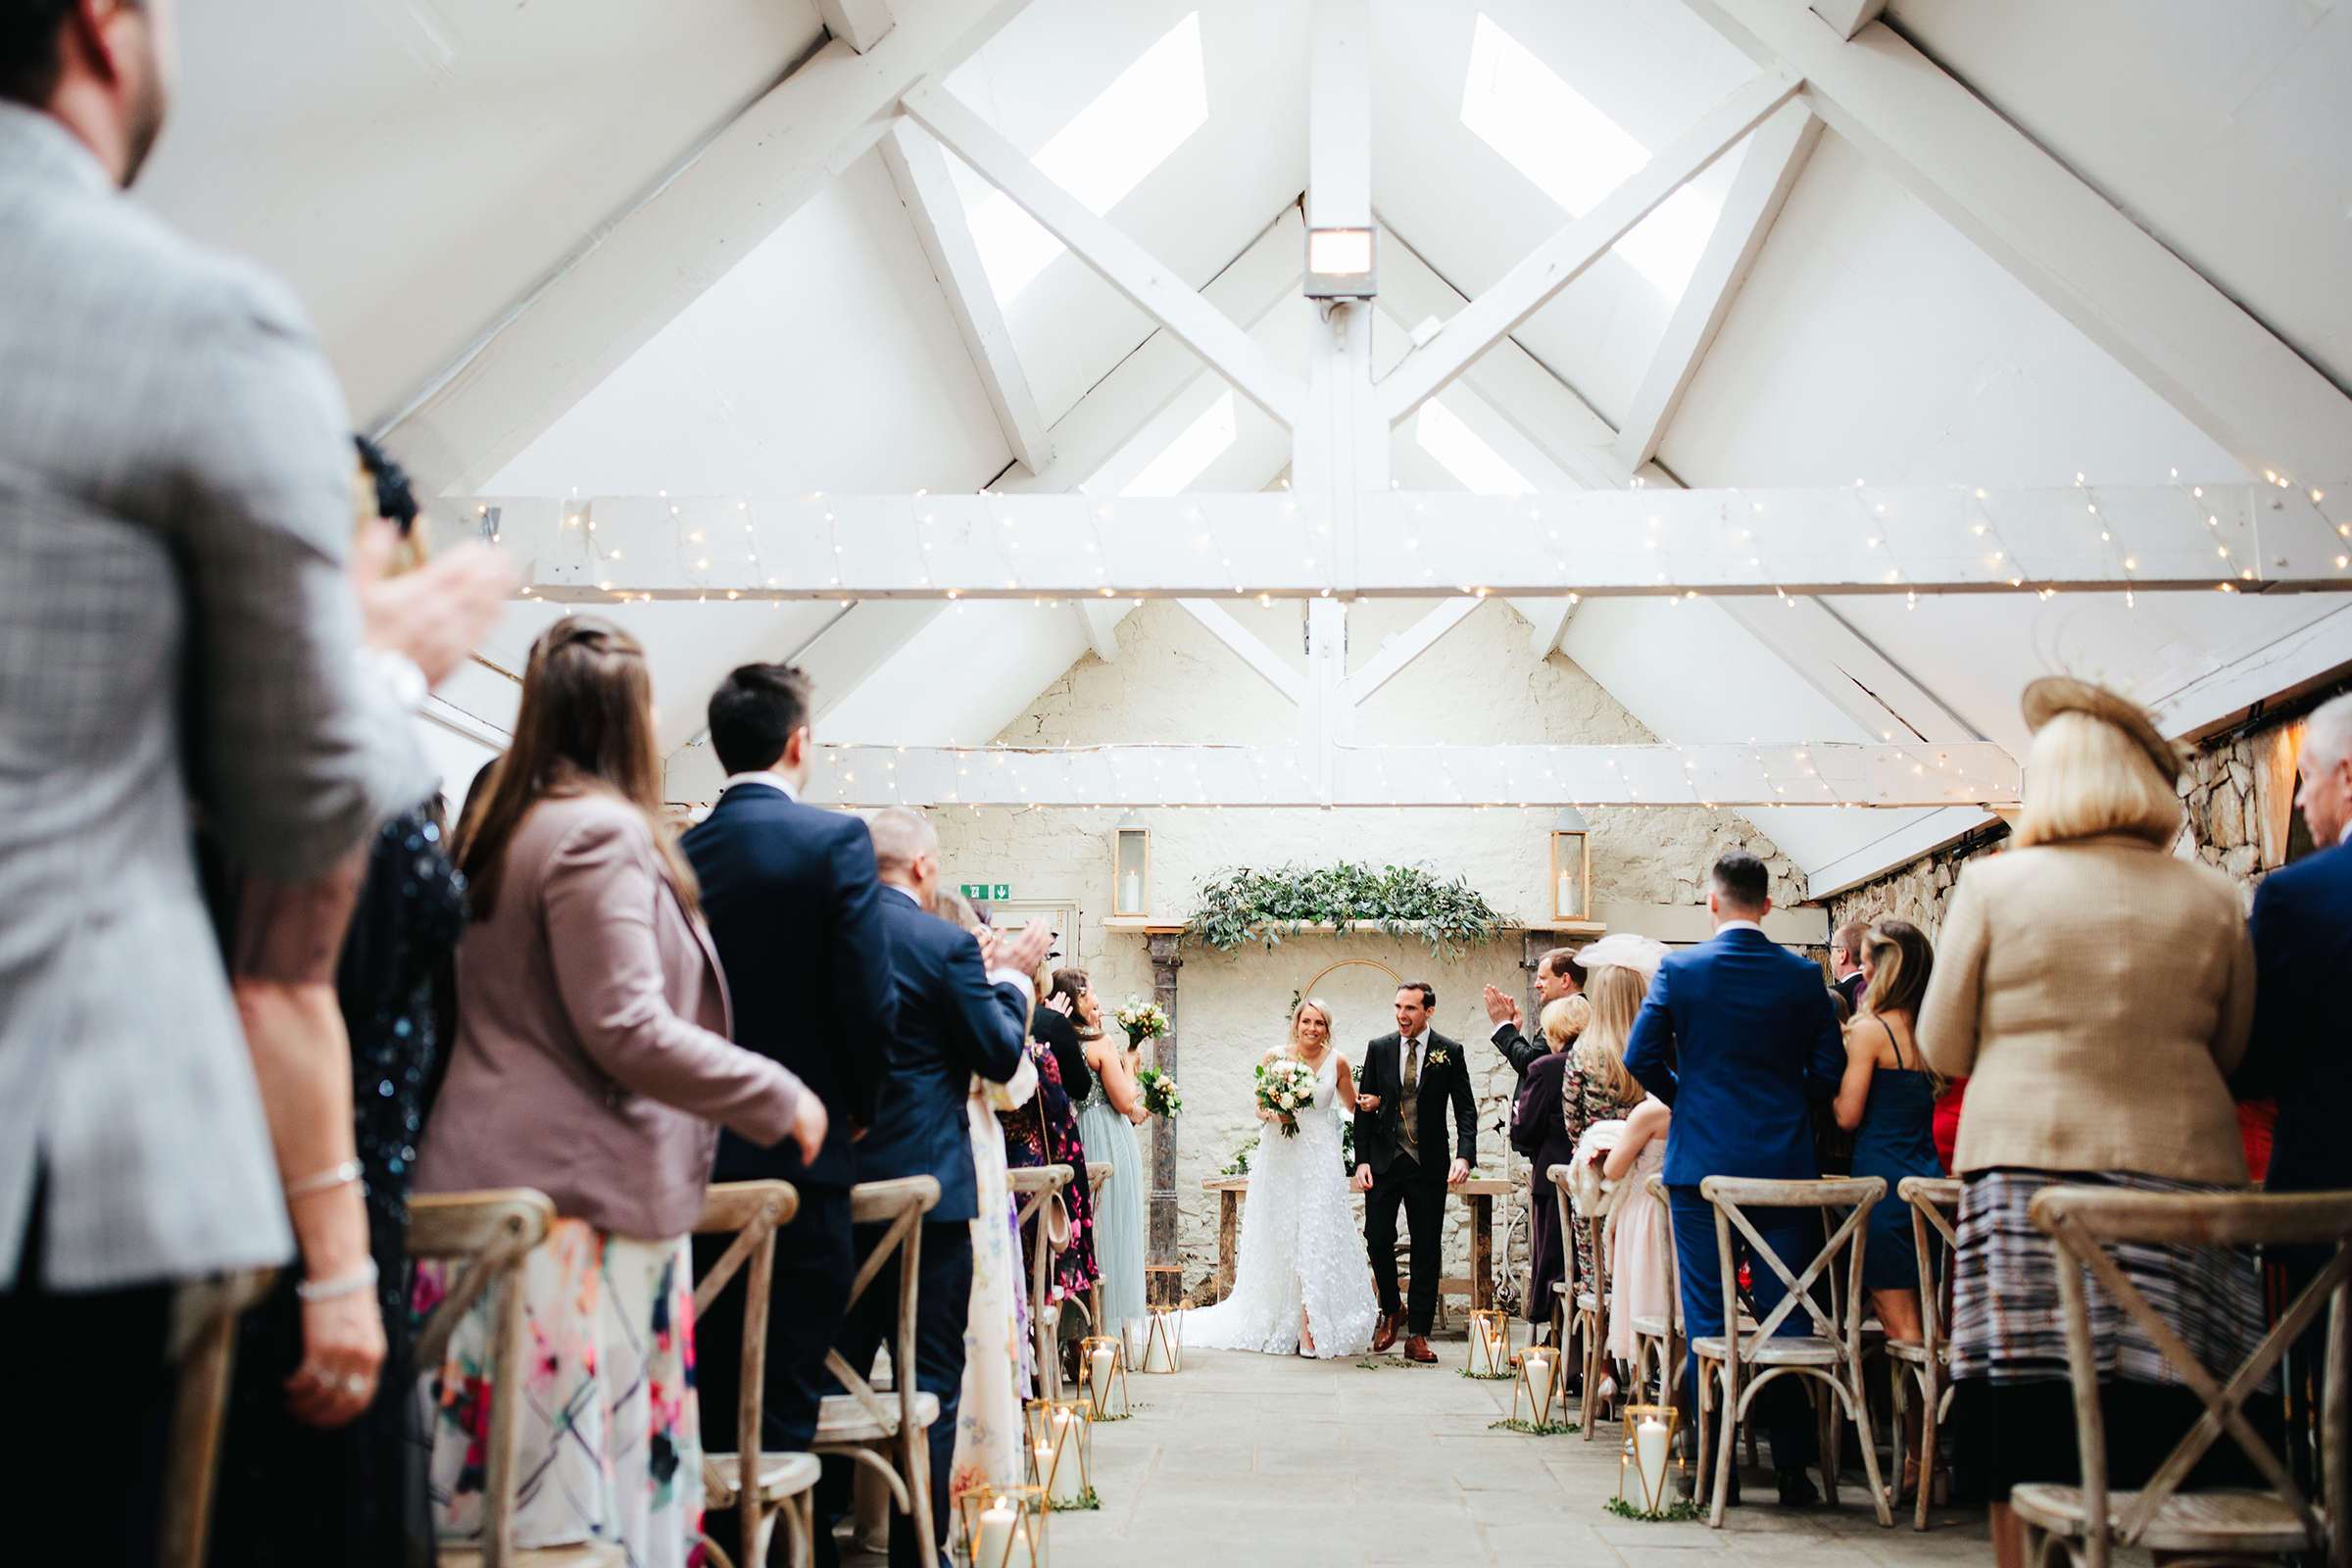 Ceremony barn at Wyresdale Park, Lancashire, England - photo by The Crawleys